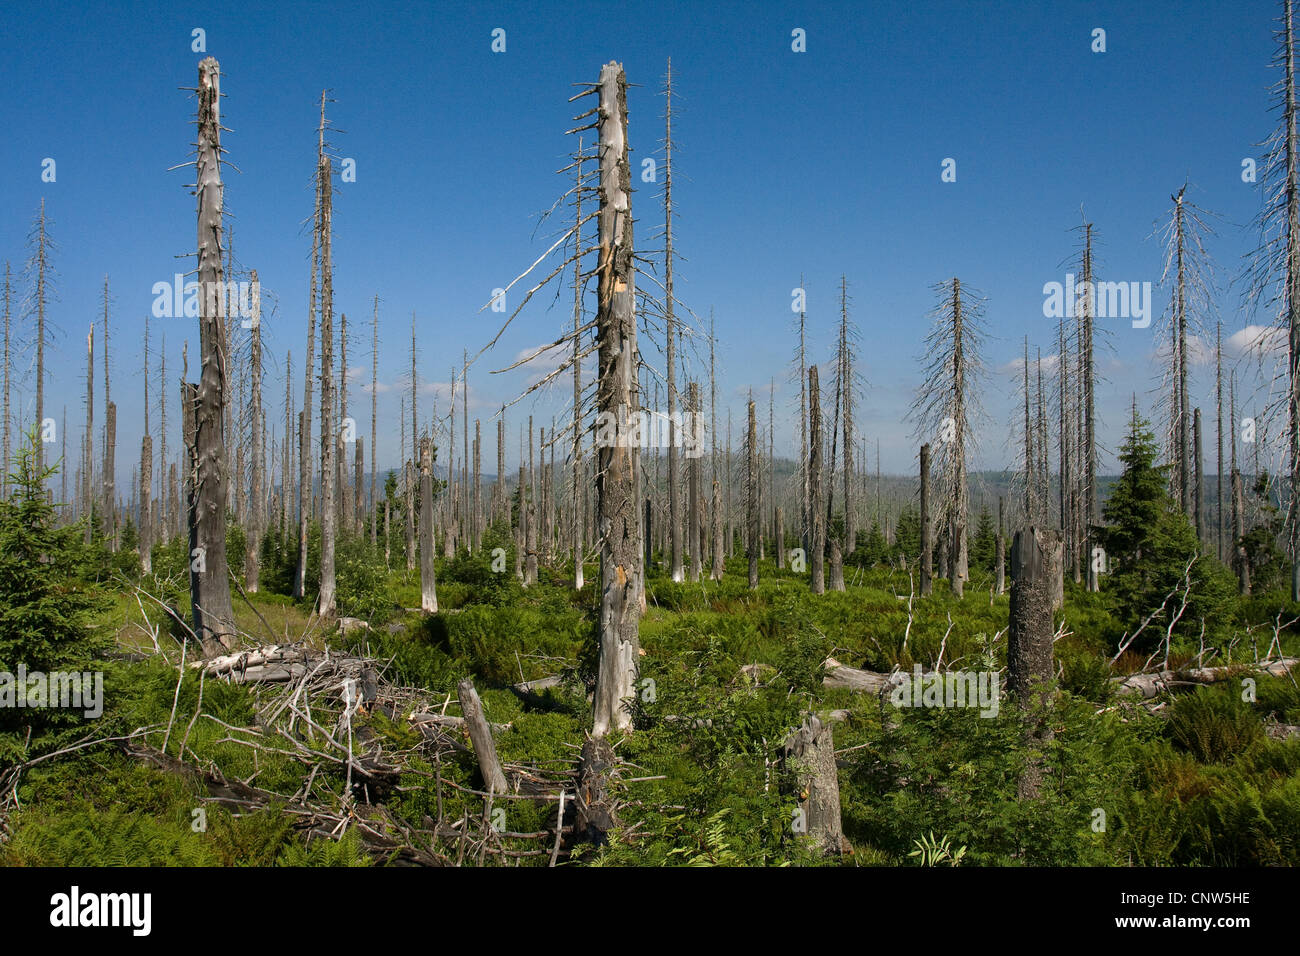 Norway spruce (Picea abies), forest dieback at Lusen in National Park Bavarian Forest, Germany, Bavaria, Bavarian Stock Photo